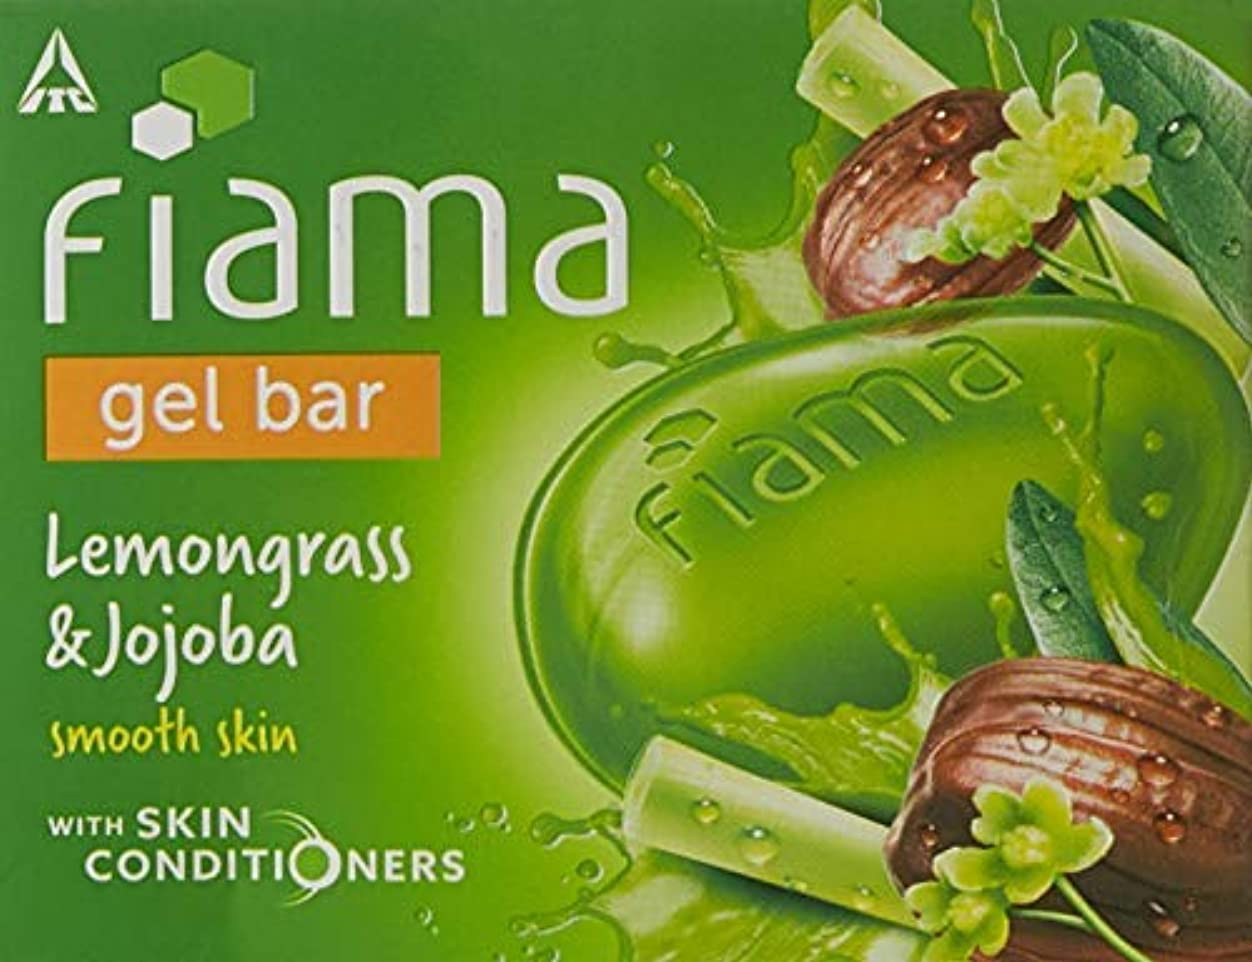 肯定的役に立たないスペシャリストFiama Di Wills Lemongrass & Jojoba Gel Bar, 125g (Pack Of 3)